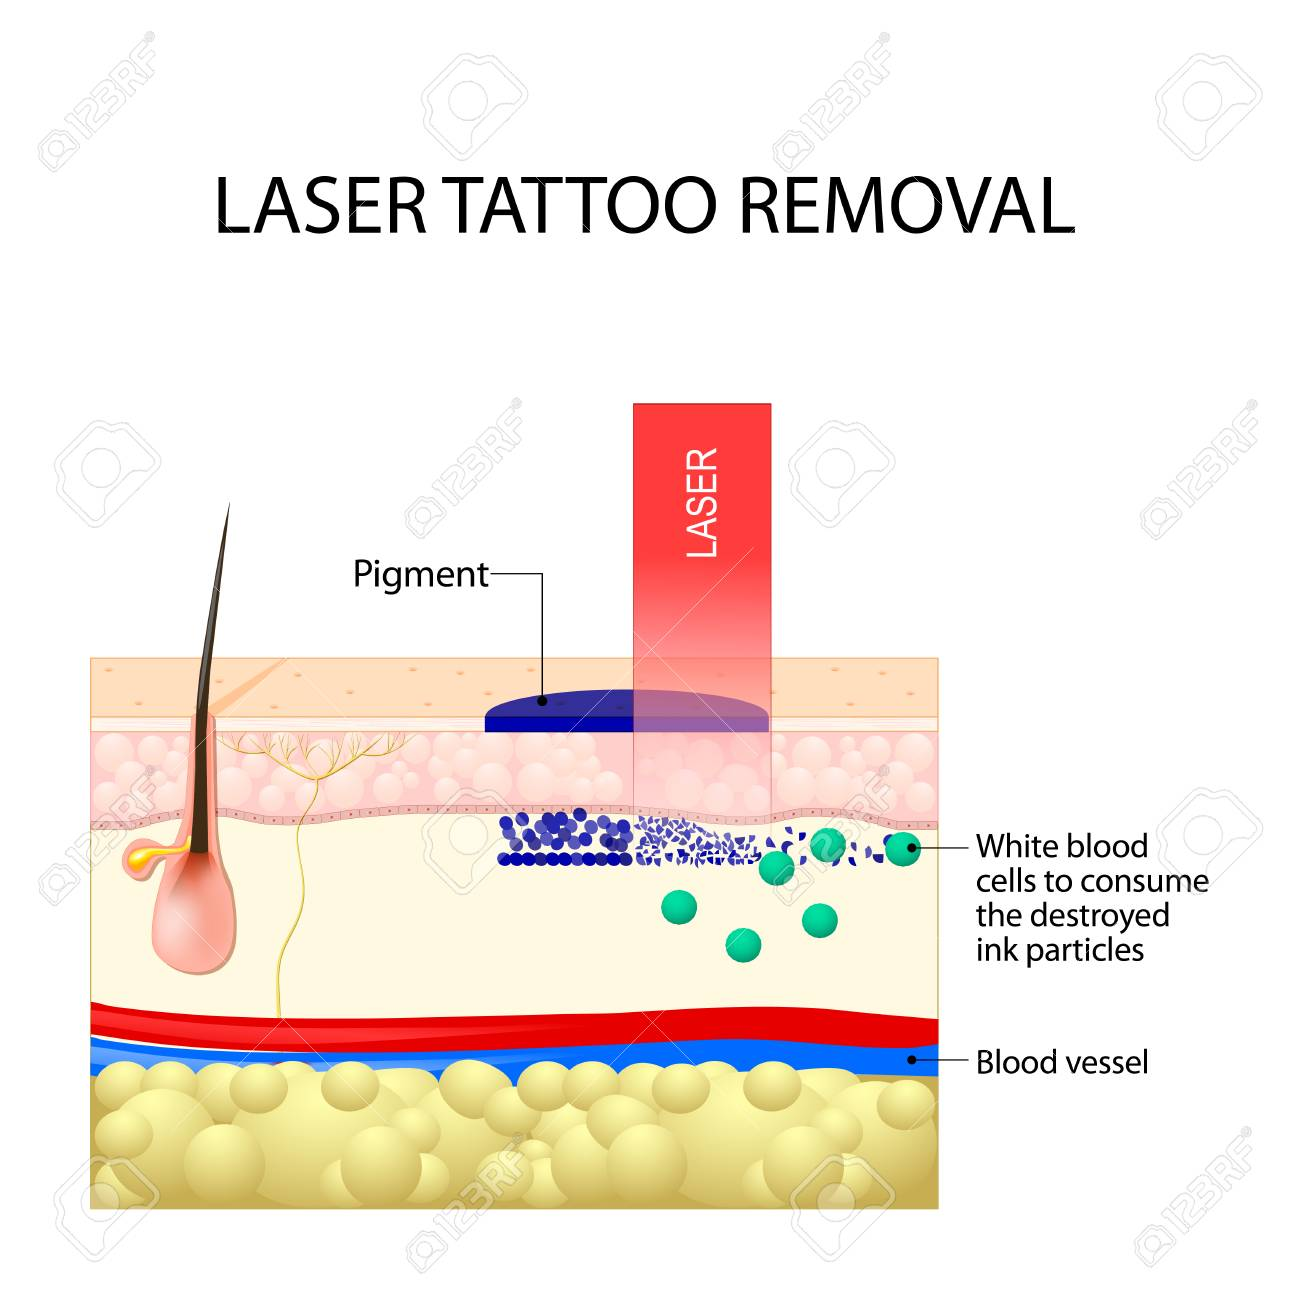 Laser tattoo removal. How Does Laser Tattoo Removal Work. Dark ink absorb light and break down. White blood cells to consume the destroyed ink particles and carry them to the liver. - 91015610